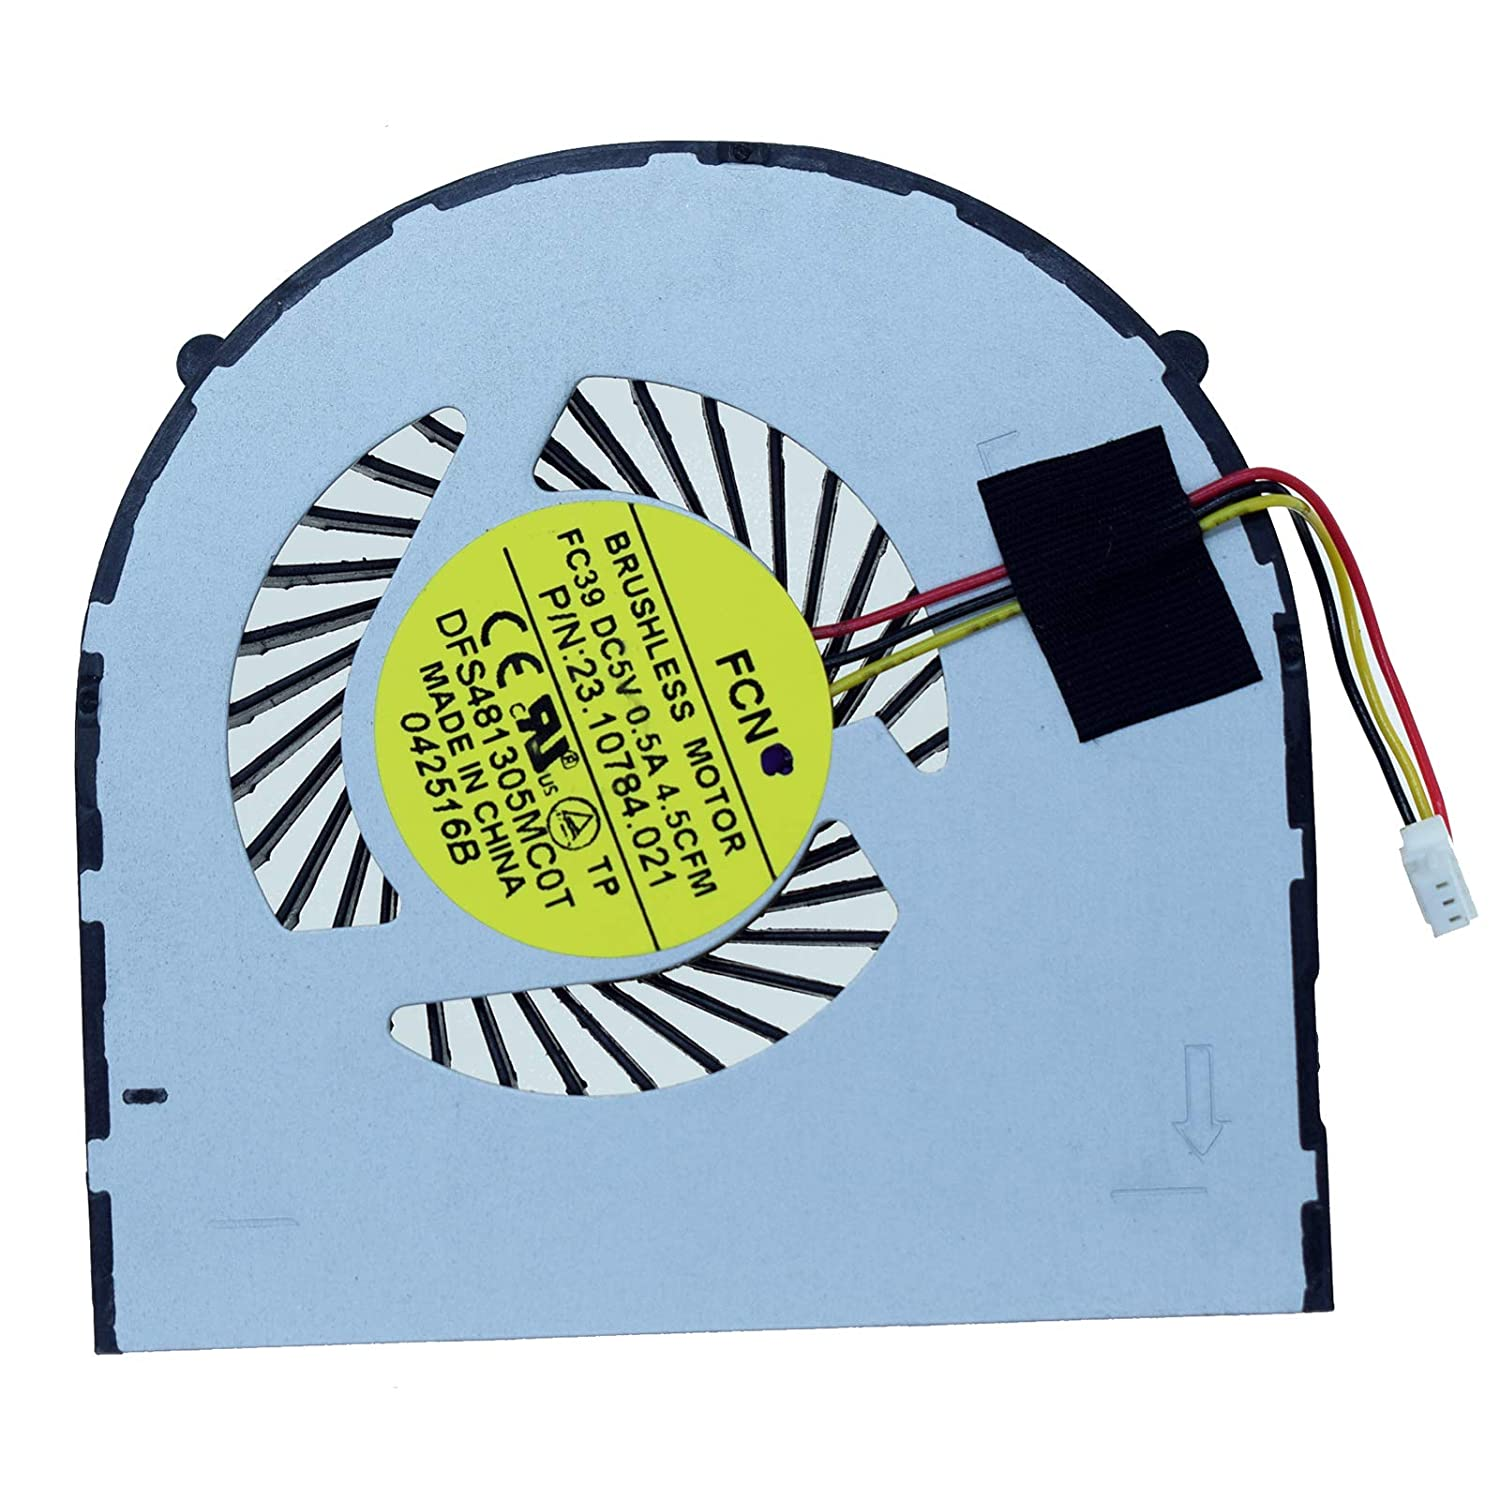 Rangale Replacement CPU Cooling Fan for Max 53% OFF 5421 Del 5435 3421 3437 Fixed price sale